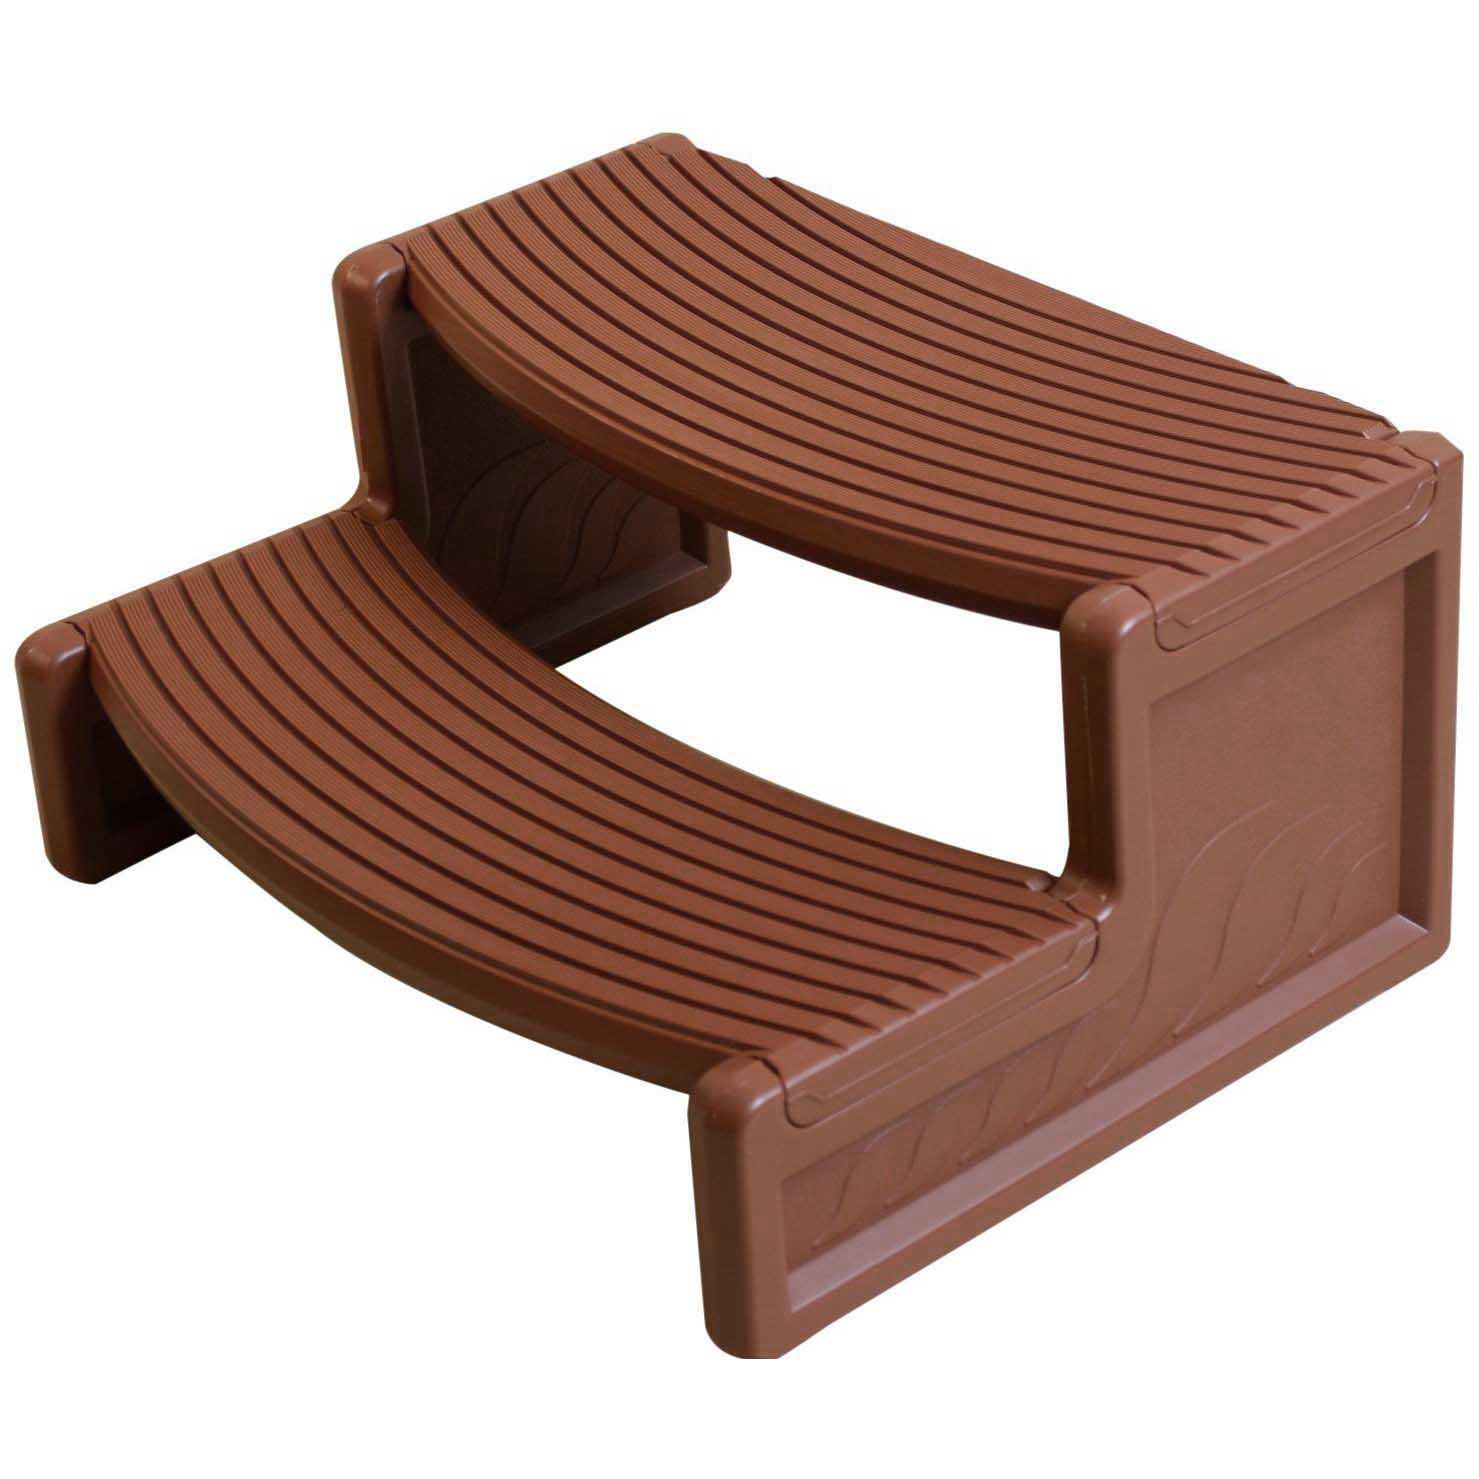 Confer Plastics HS2 Resin Multi Purpose Spa Hot Tub Handi-Step Steps, Mahogany by Confer